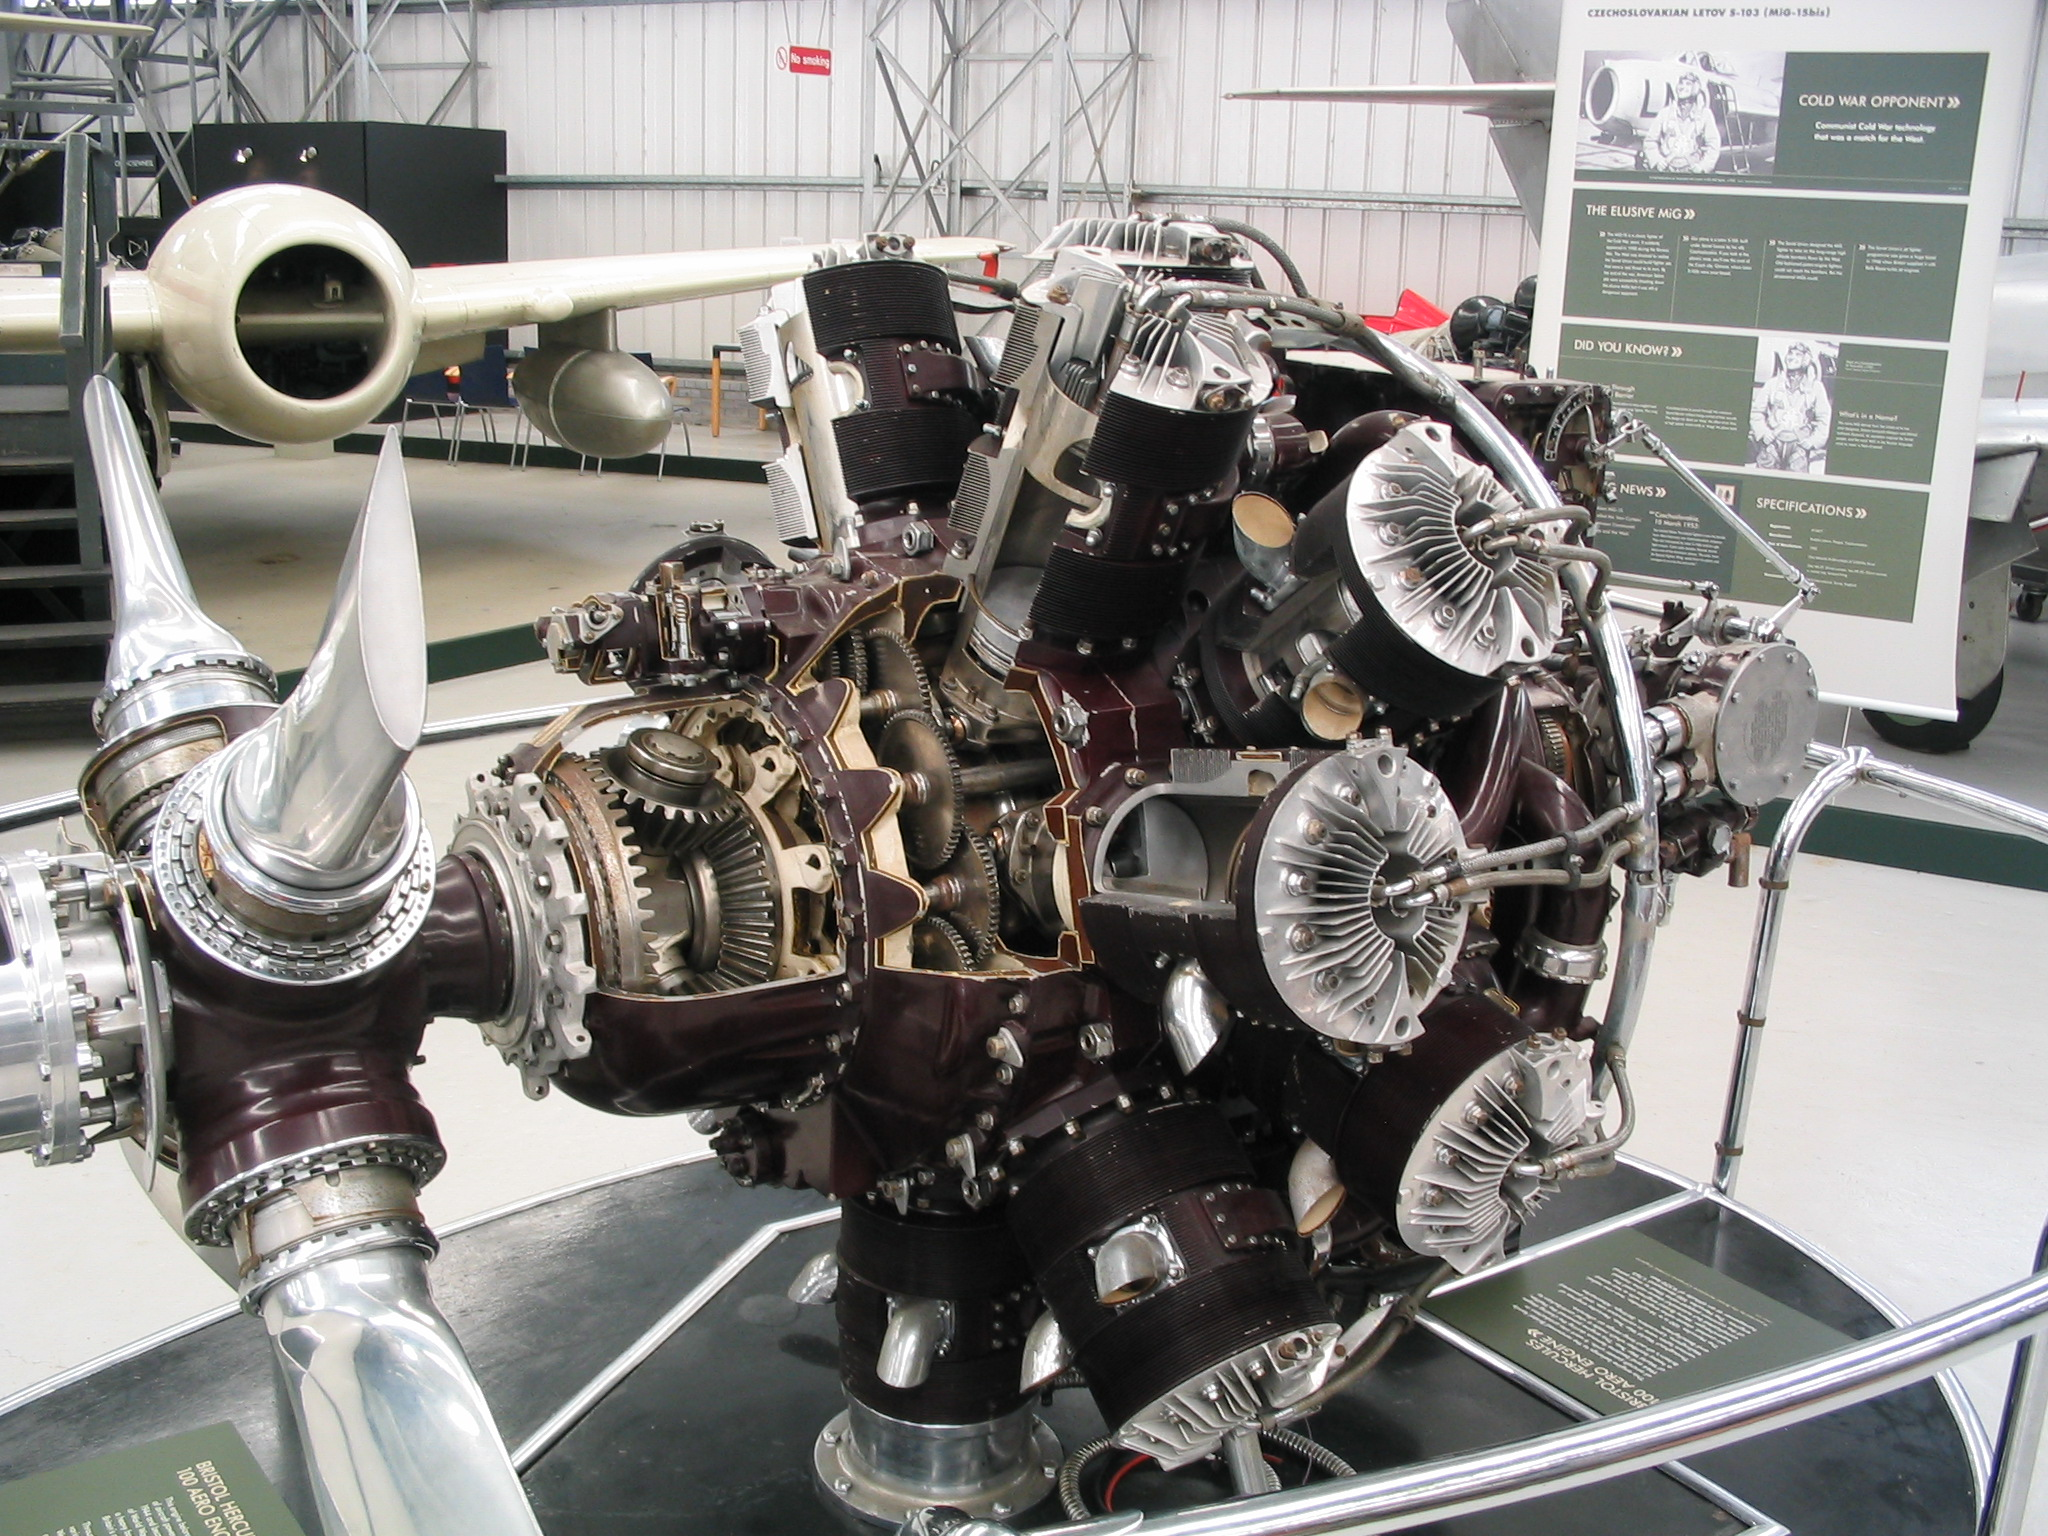 radial engine front diagram wiring library Radial Engine Crankshaft Diagram radial engine front diagram